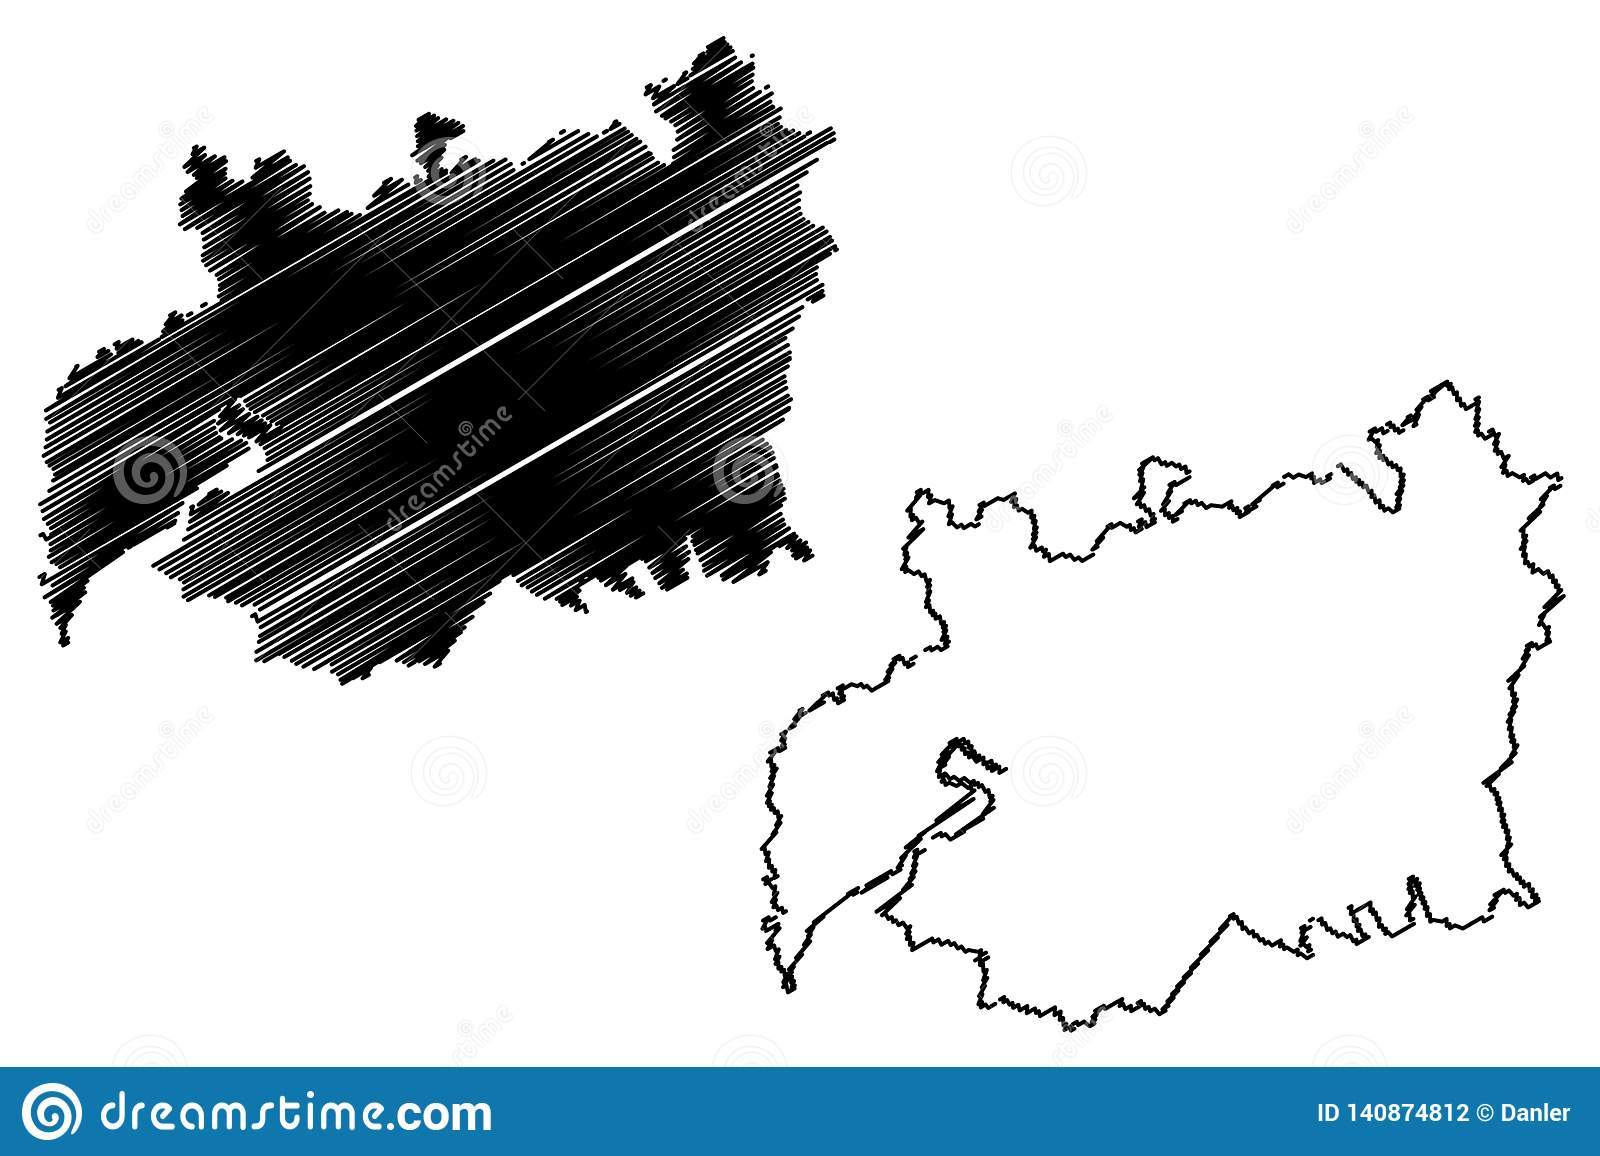 Map Of England Gloucestershire.Gloucestershire Map Vector Stock Vector Illustration Of Archipelago